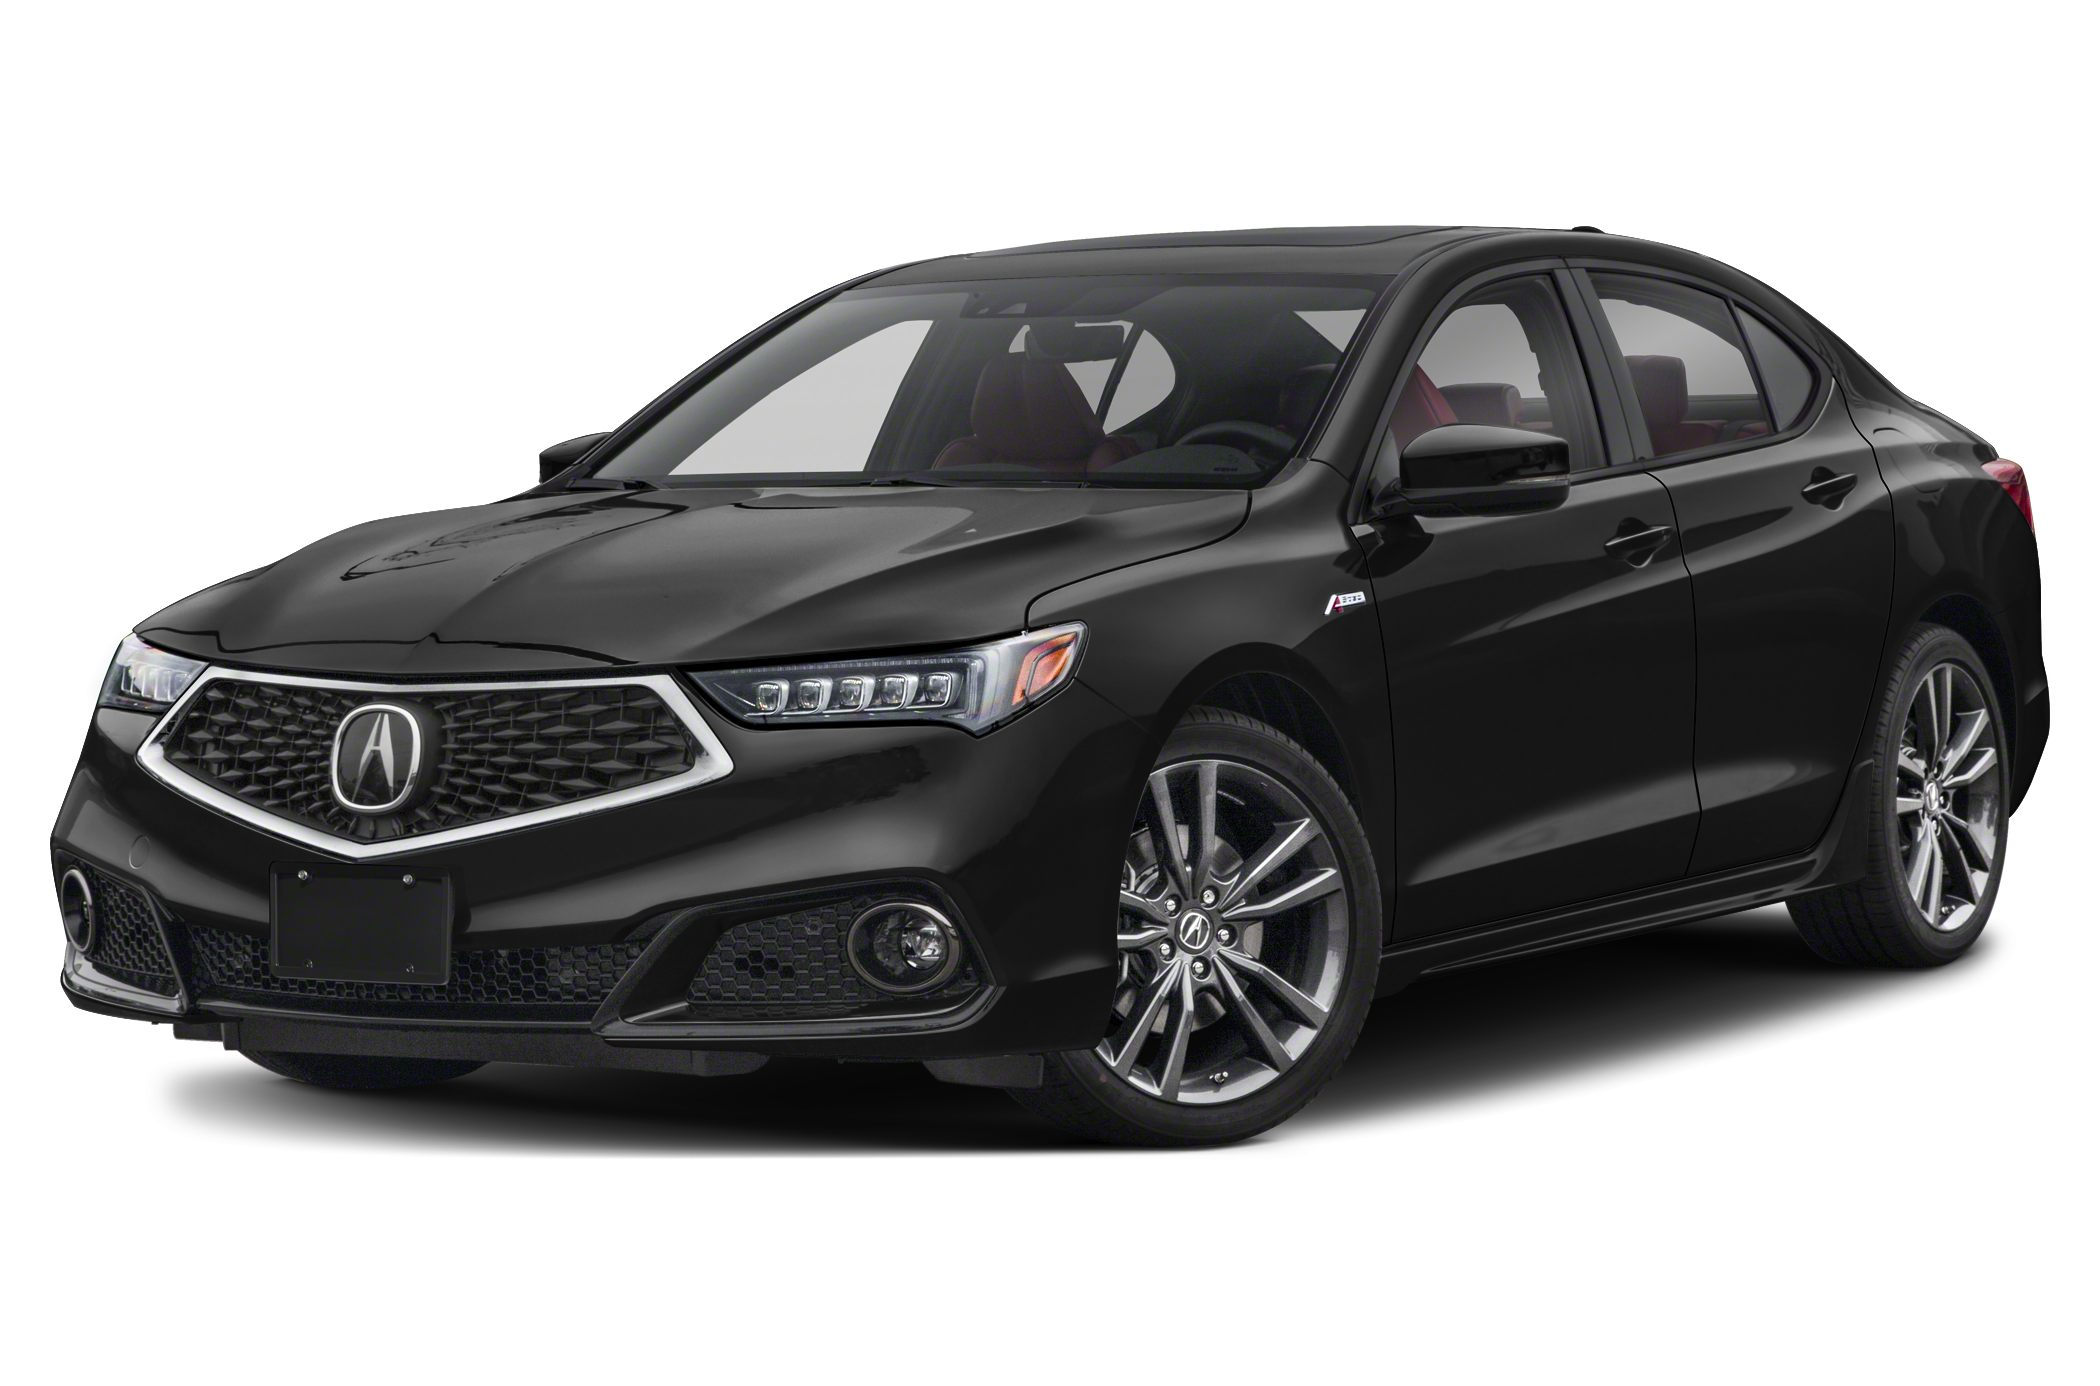 2020 Acura TLX 2.4L A-Spec Pkg w/Red Leather 4dr Front-wheel Drive Sedan